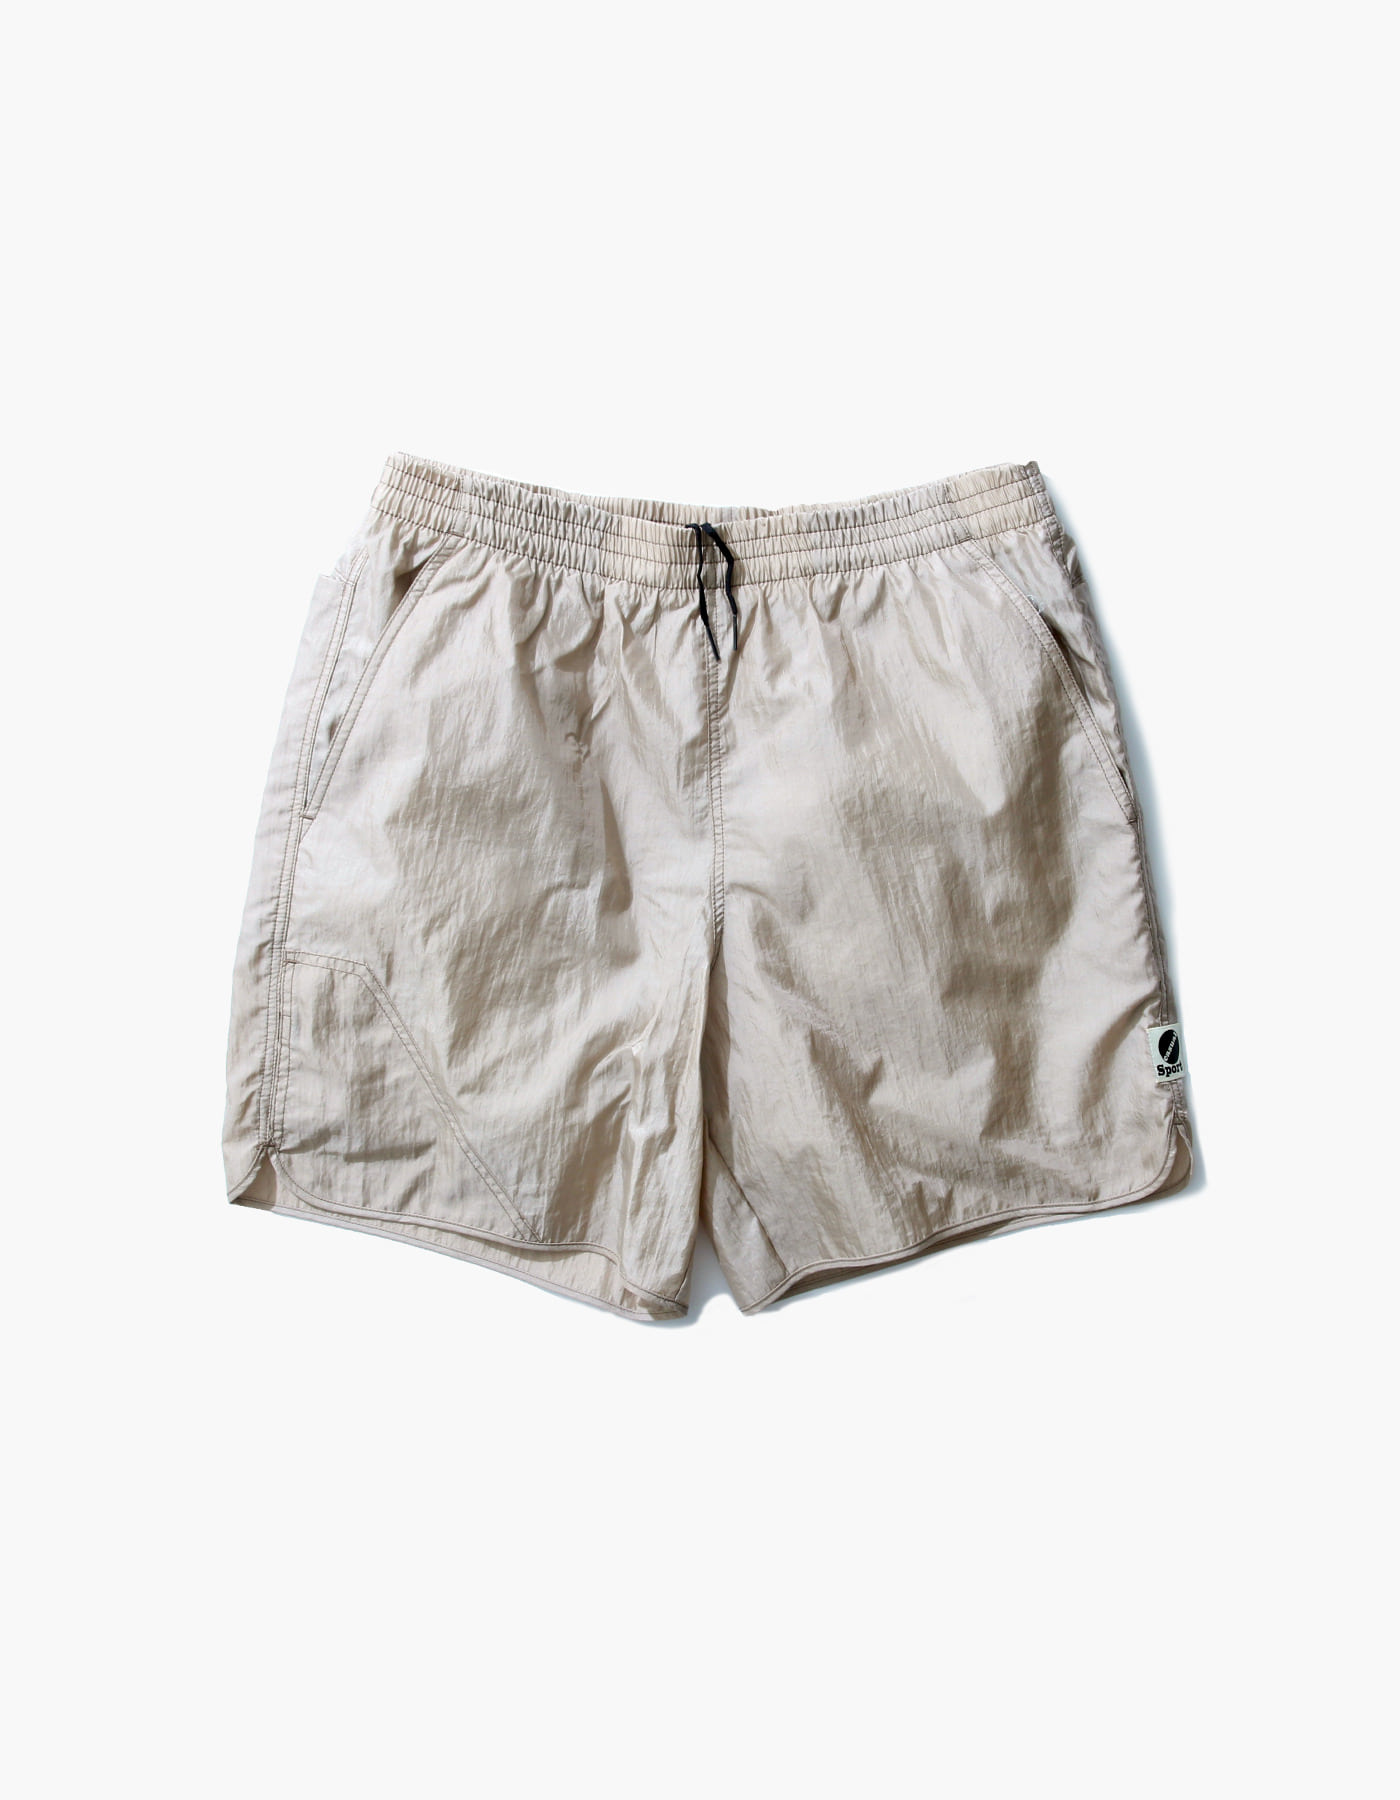 NYLON DIAMOND WASHER SHORTS II / BEIGE